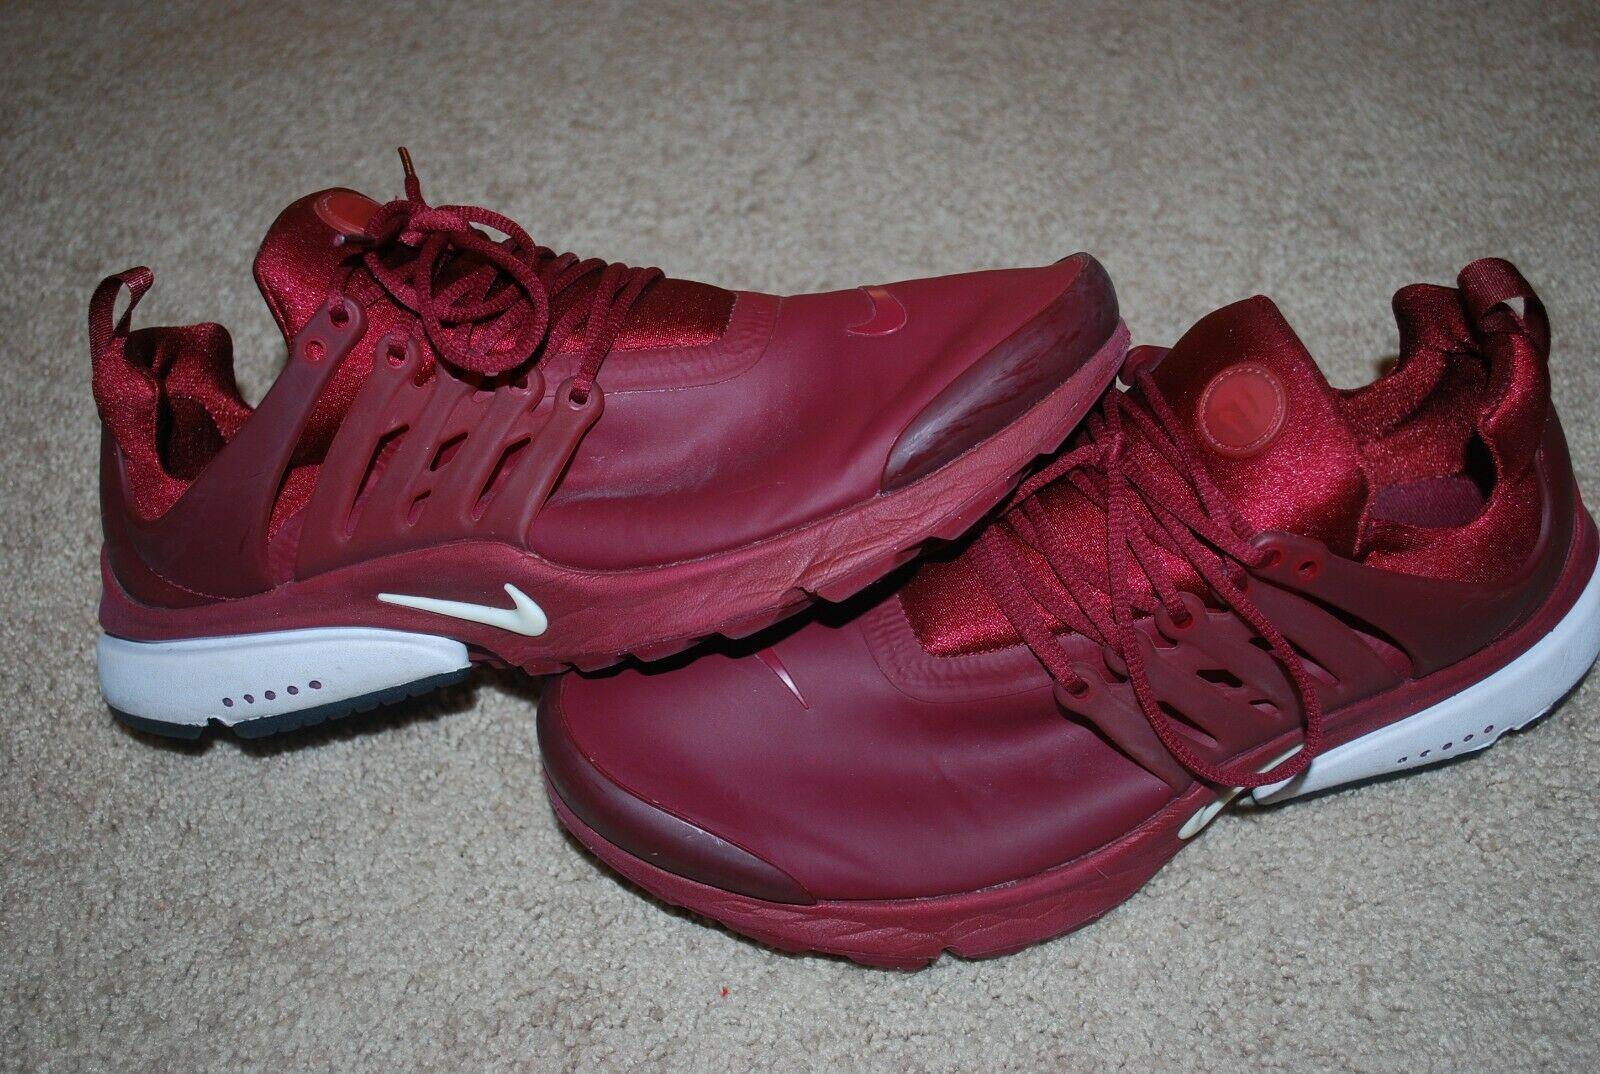 083b9c6204a Men's Nike Presto Utility Red Sneakers (10) 862749-600 Air Low  nnqexn3481-Athletic Shoes